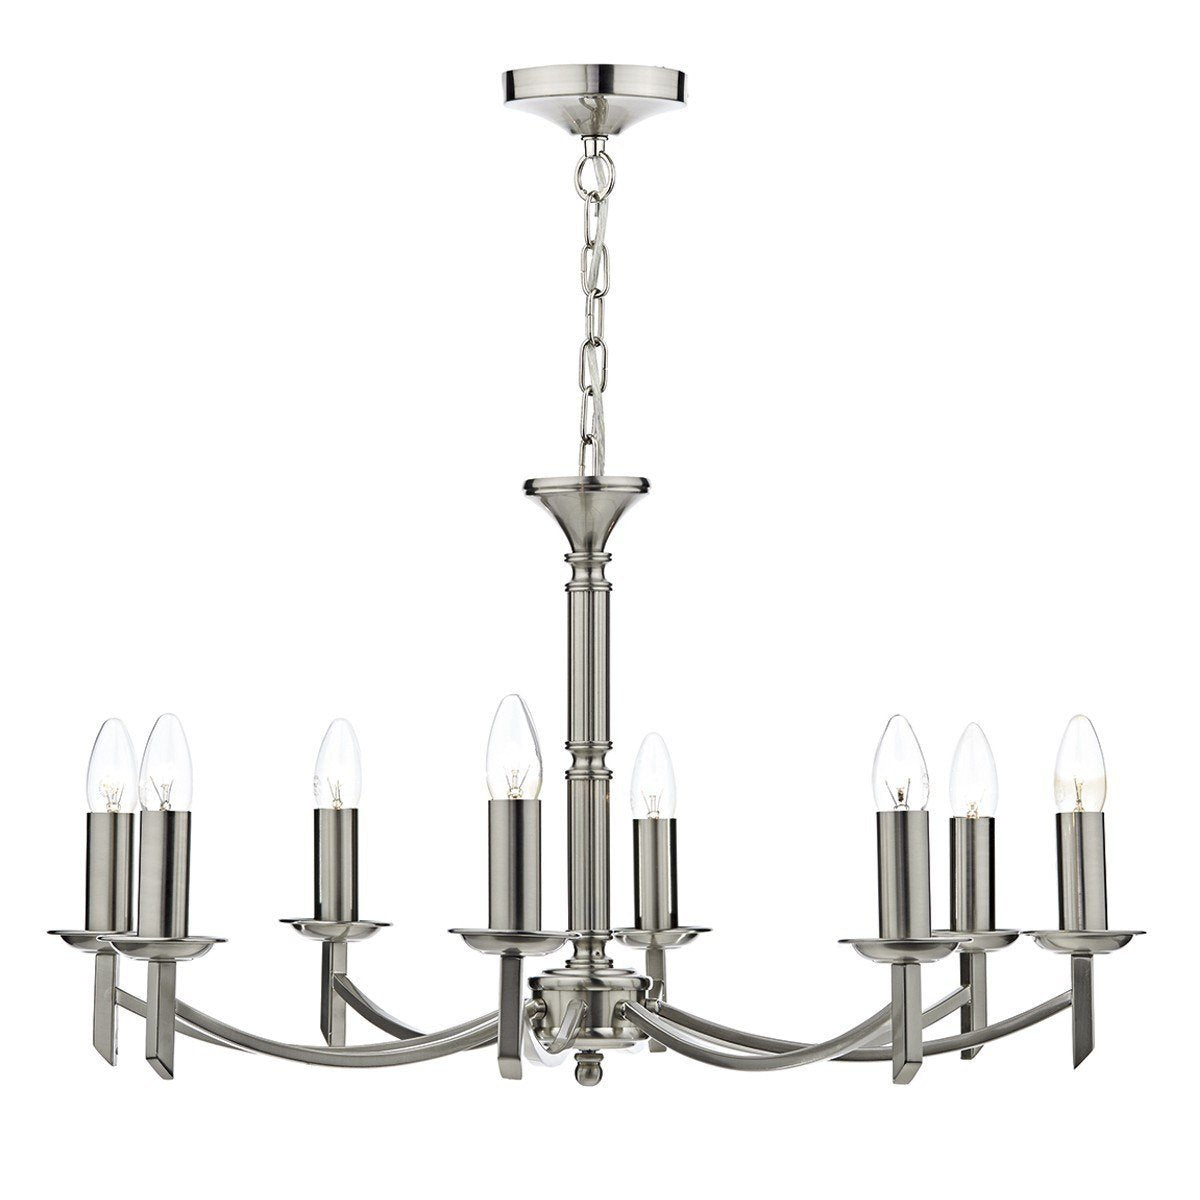 Ambassador Satin Chrome 8 Arm Dual Mount Pendant Light - London Lighting - 1